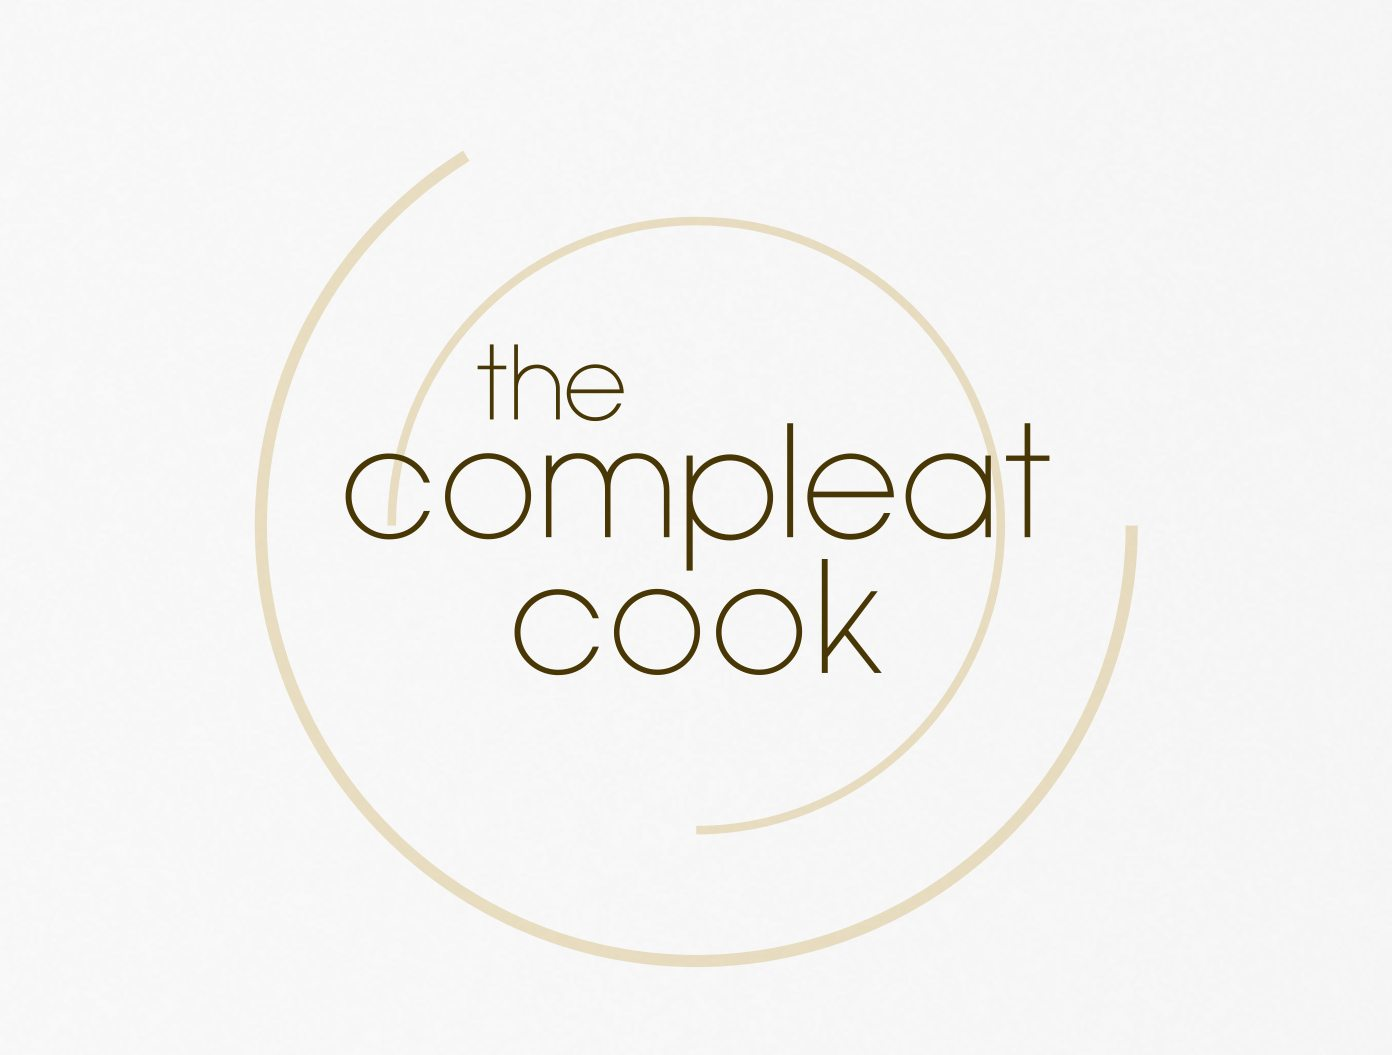 Compleat Cook Logo Design Services